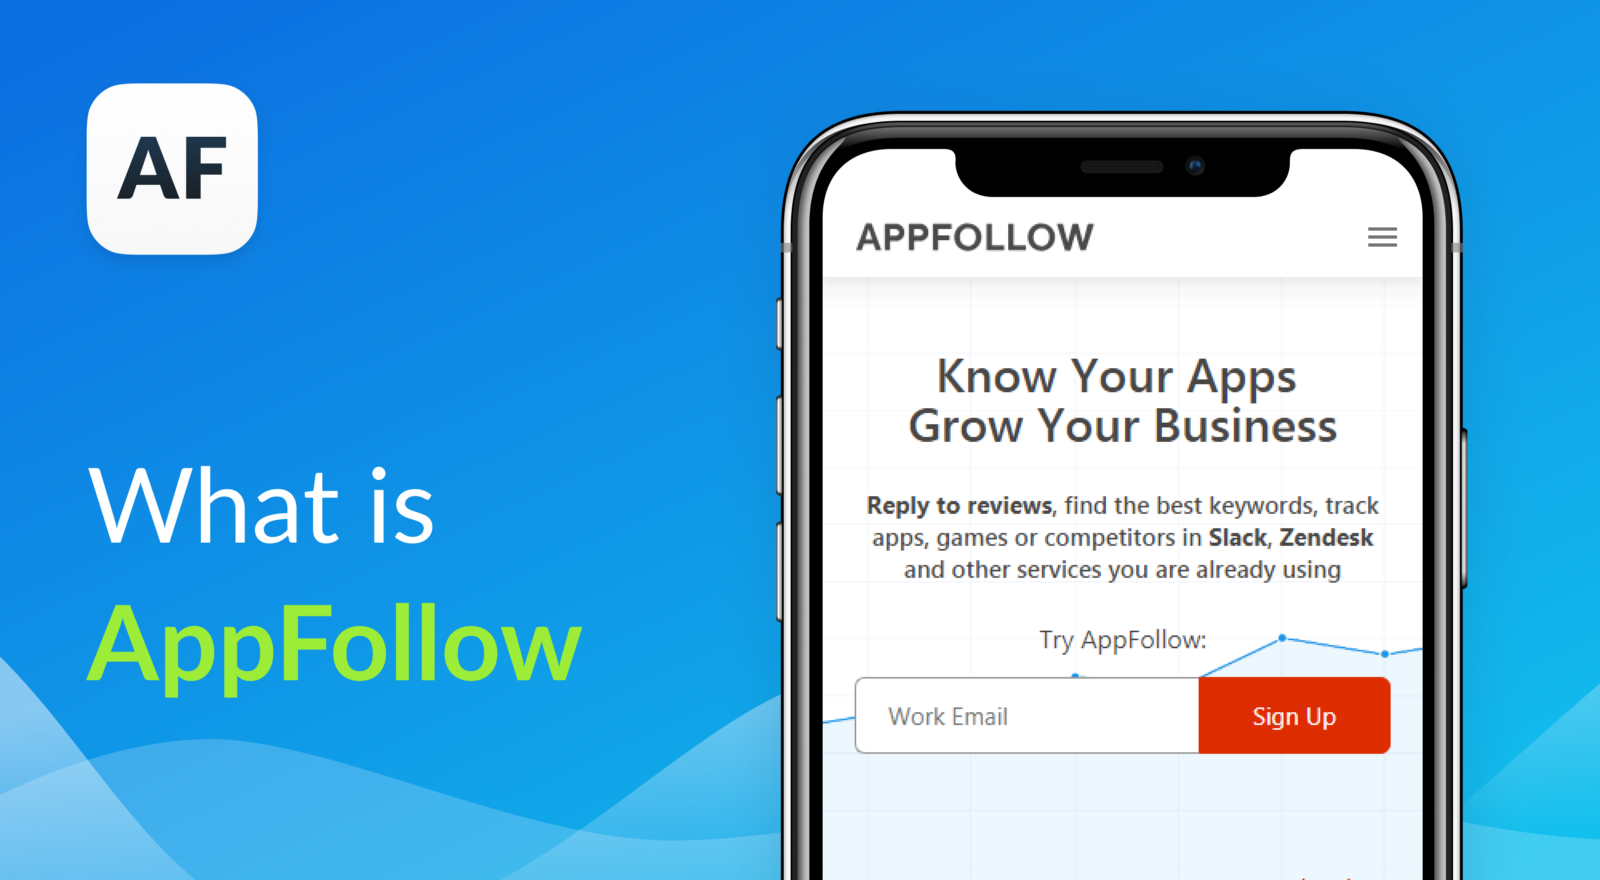 AppFollow is a product management tool for app promotion and app store optimization